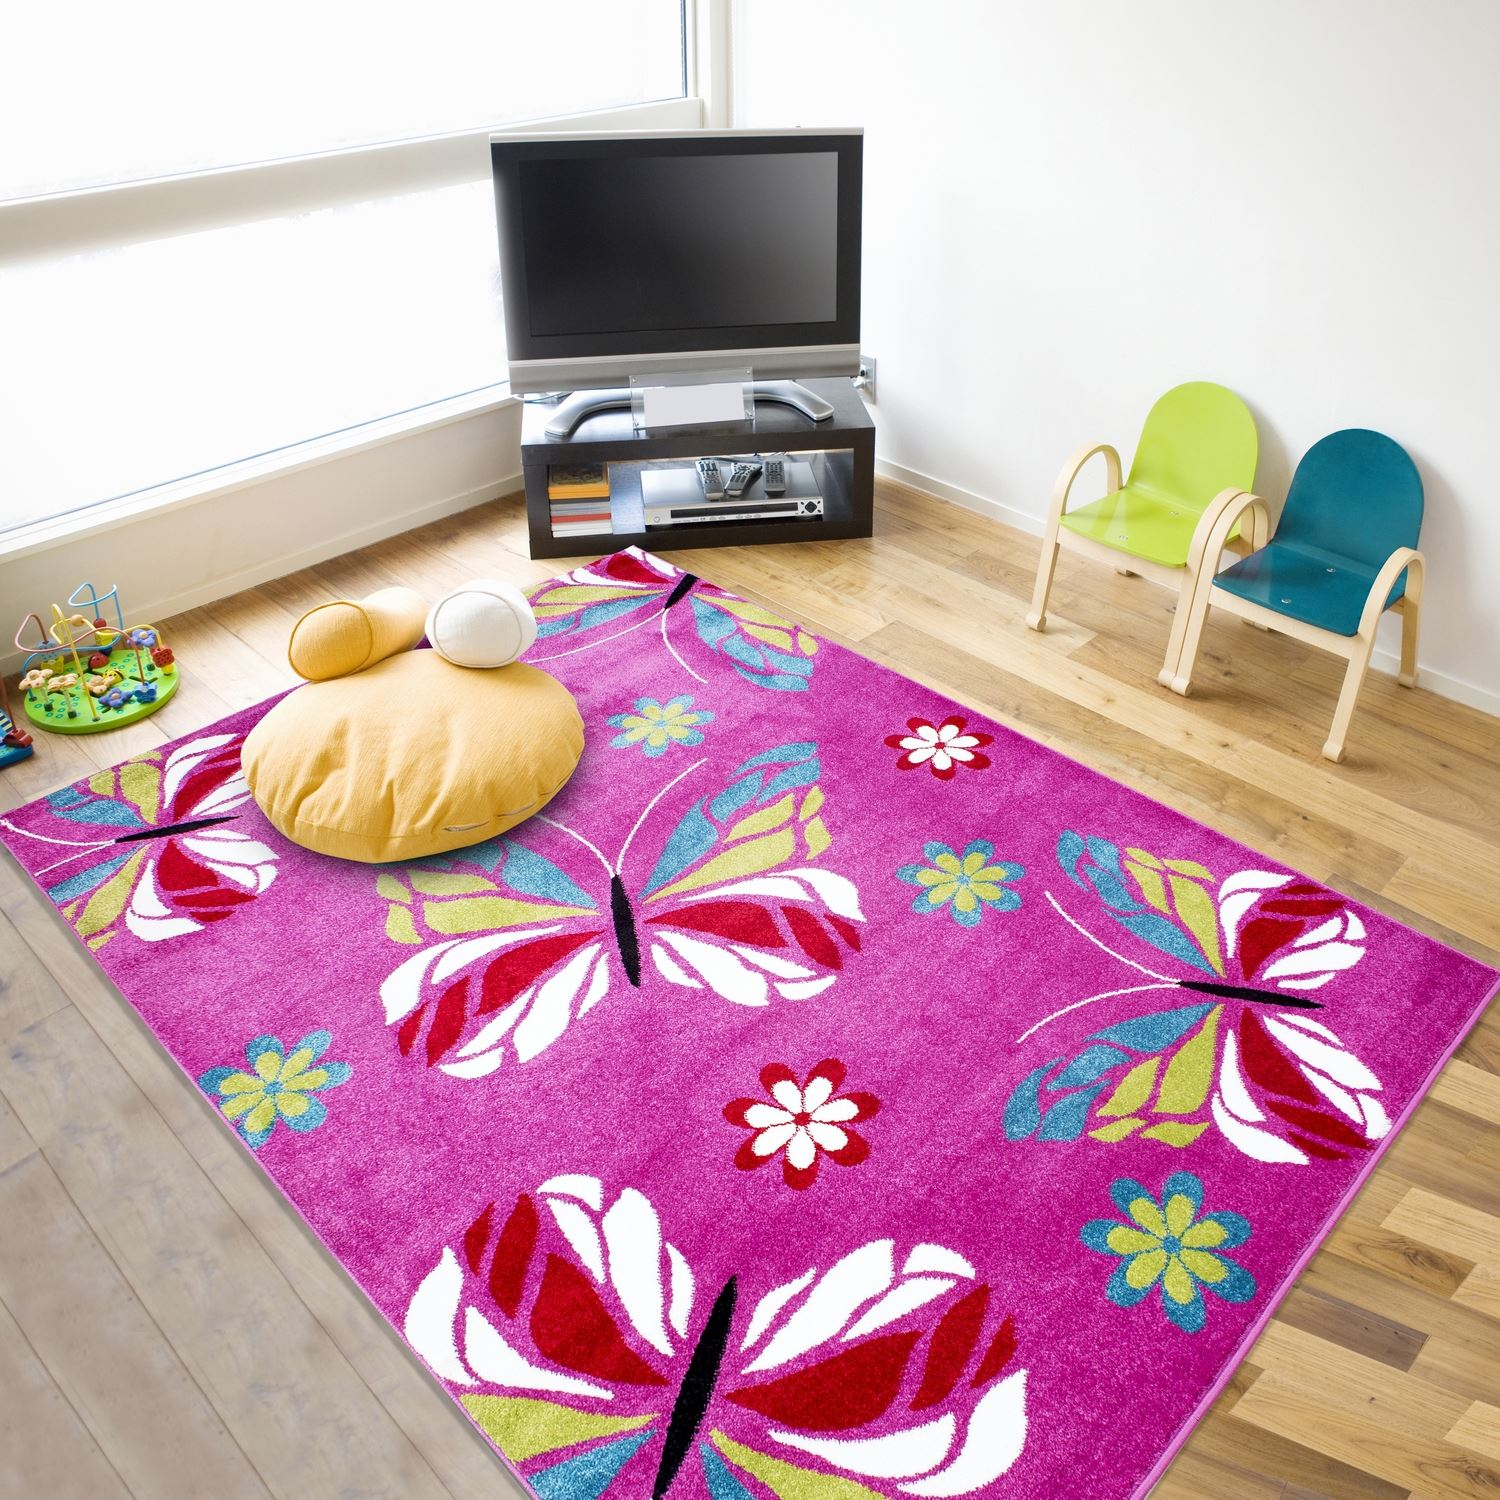 childrens bedroom rugs childrens soft quality bedroom blue pink car rugs 11103